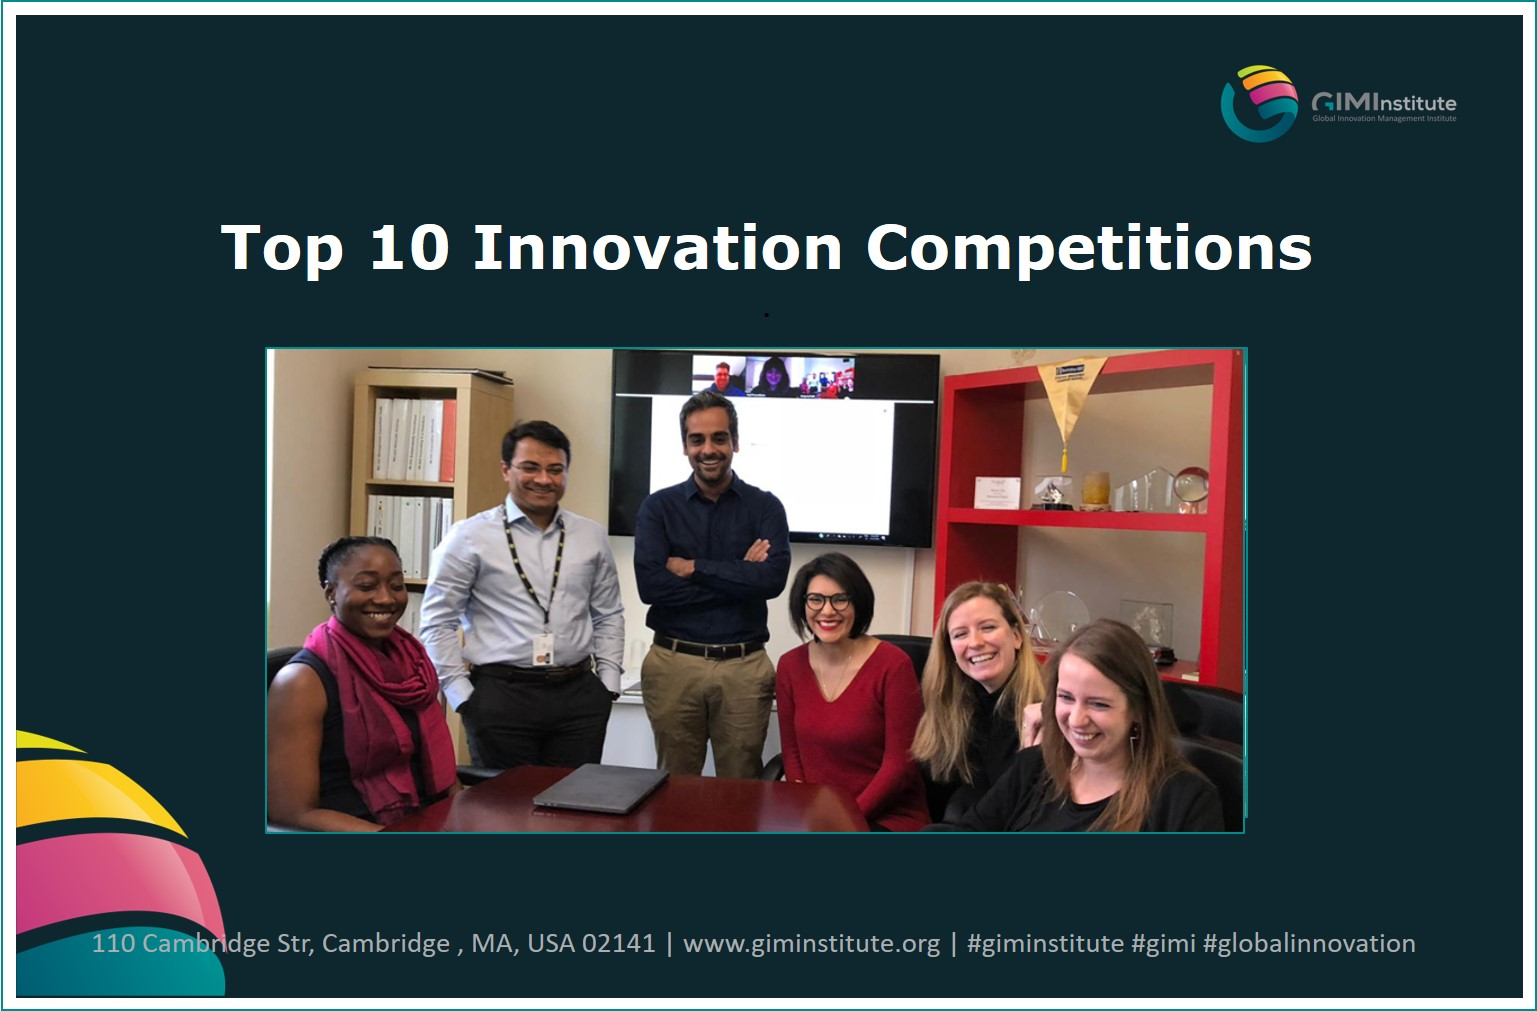 innovation consulting competitions - gimi top10